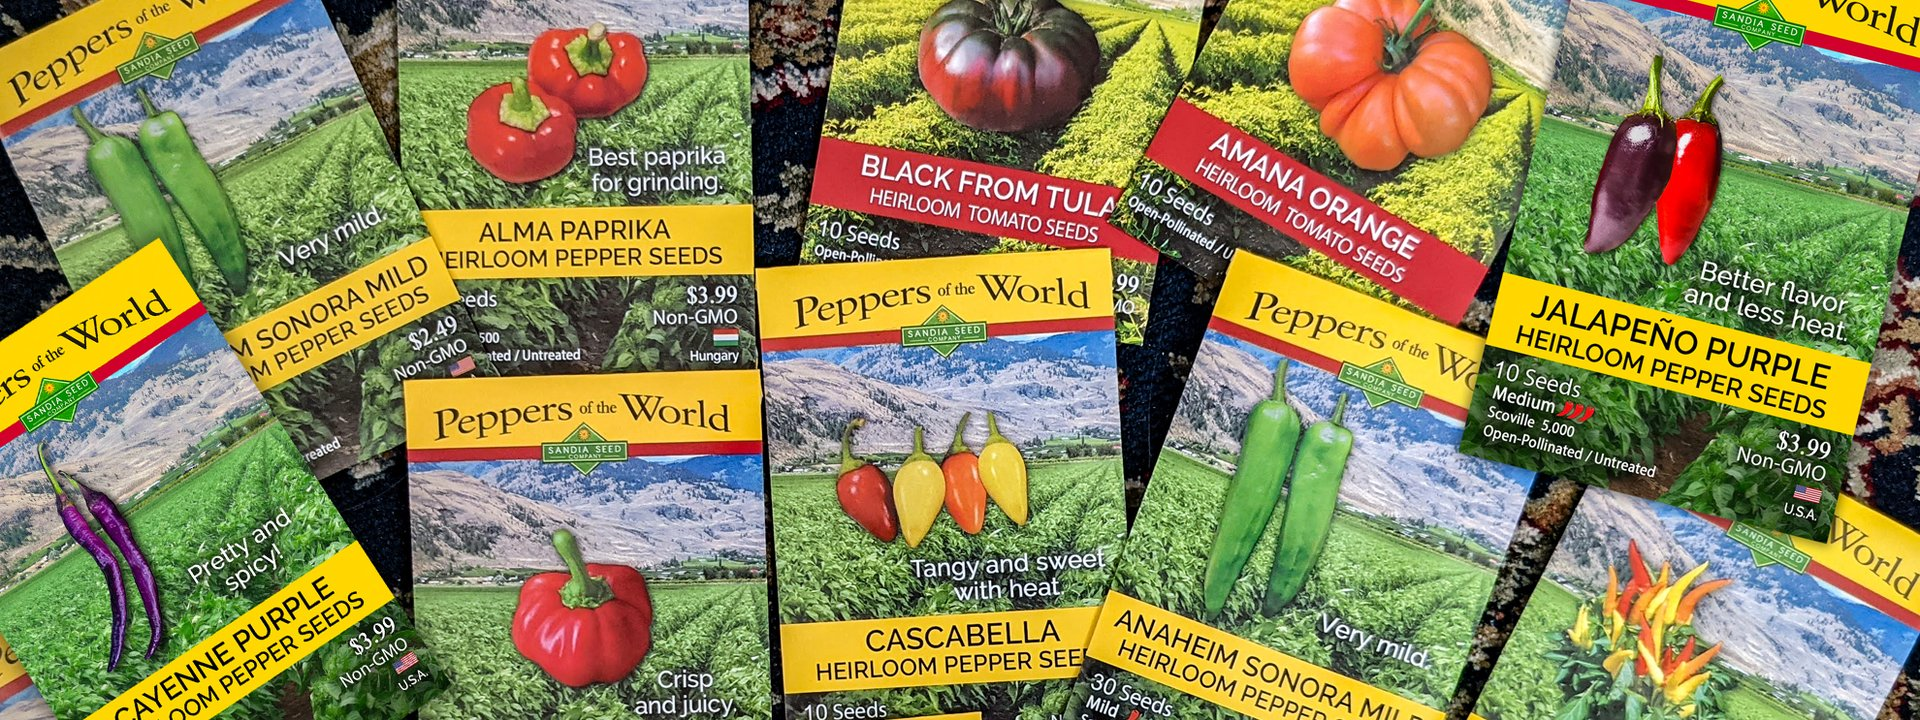 Check out our New 2019 Hot Pepper Seeds